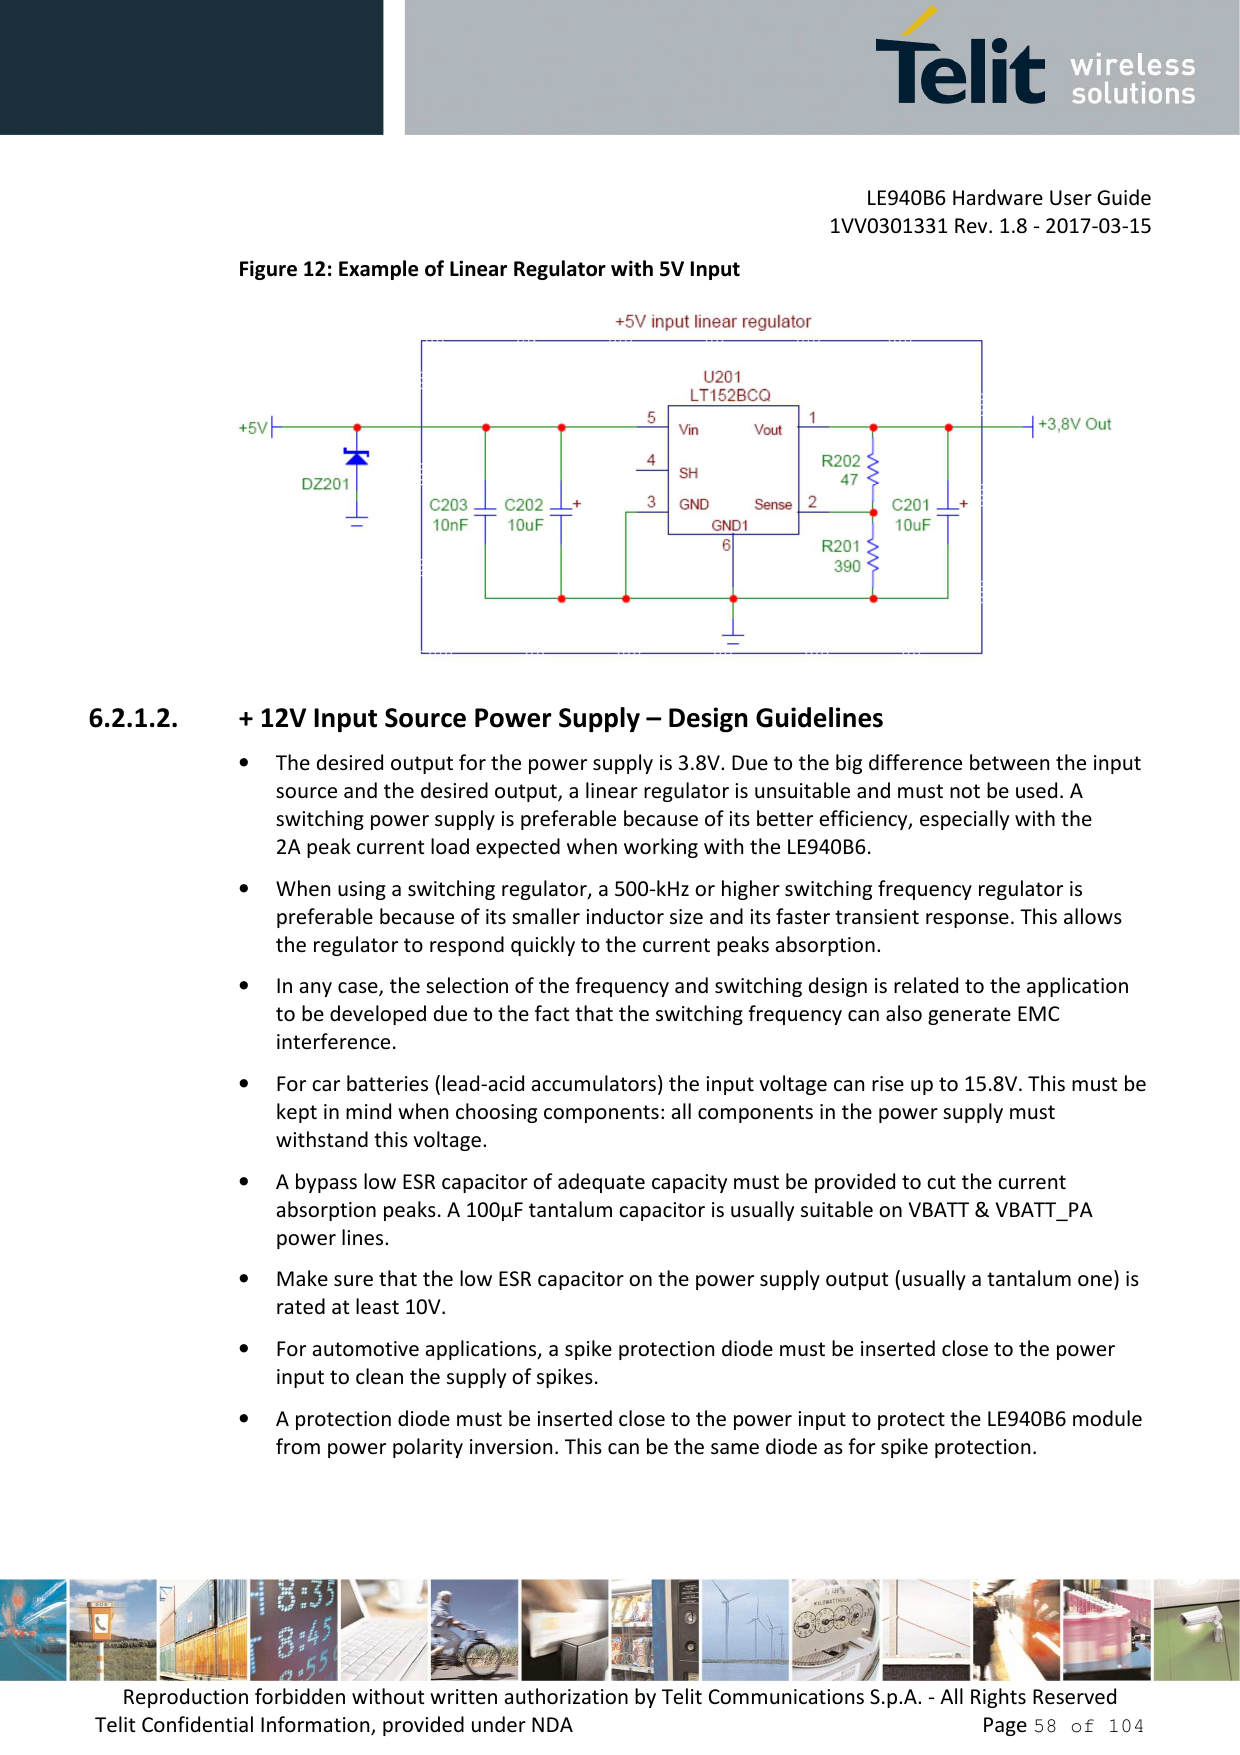 LE940B6 Hardware User Guide     1VV0301331 Rev. 1.8 - 2017-03-15 Reproduction forbidden without written authorization by Telit Communications S.p.A. - All Rights Reserved Telit Confidential Information, provided under NDA                 Page 58 of 104 Figure 12: Example of Linear Regulator with 5V Input  6.2.1.2. + 12V Input Source Power Supply – Design Guidelines • The desired output for the power supply is 3.8V. Due to the big difference between the input source and the desired output, a linear regulator is unsuitable and must not be used. A switching power supply is preferable because of its better efficiency, especially with the 2A peak current load expected when working with the LE940B6.  • When using a switching regulator, a 500-kHz or higher switching frequency regulator is preferable because of its smaller inductor size and its faster transient response. This allows the regulator to respond quickly to the current peaks absorption.  • In any case, the selection of the frequency and switching design is related to the application to be developed due to the fact that the switching frequency can also generate EMC interference. • For car batteries (lead-acid accumulators) the input voltage can rise up to 15.8V. This must be kept in mind when choosing components: all components in the power supply must withstand this voltage. • A bypass low ESR capacitor of adequate capacity must be provided to cut the current absorption peaks. A 100μF tantalum capacitor is usually suitable on VBATT & VBATT_PA power lines.  • Make sure that the low ESR capacitor on the power supply output (usually a tantalum one) is rated at least 10V. • For automotive applications, a spike protection diode must be inserted close to the power input to clean the supply of spikes.  • A protection diode must be inserted close to the power input to protect the LE940B6 module from power polarity inversion. This can be the same diode as for spike protection.